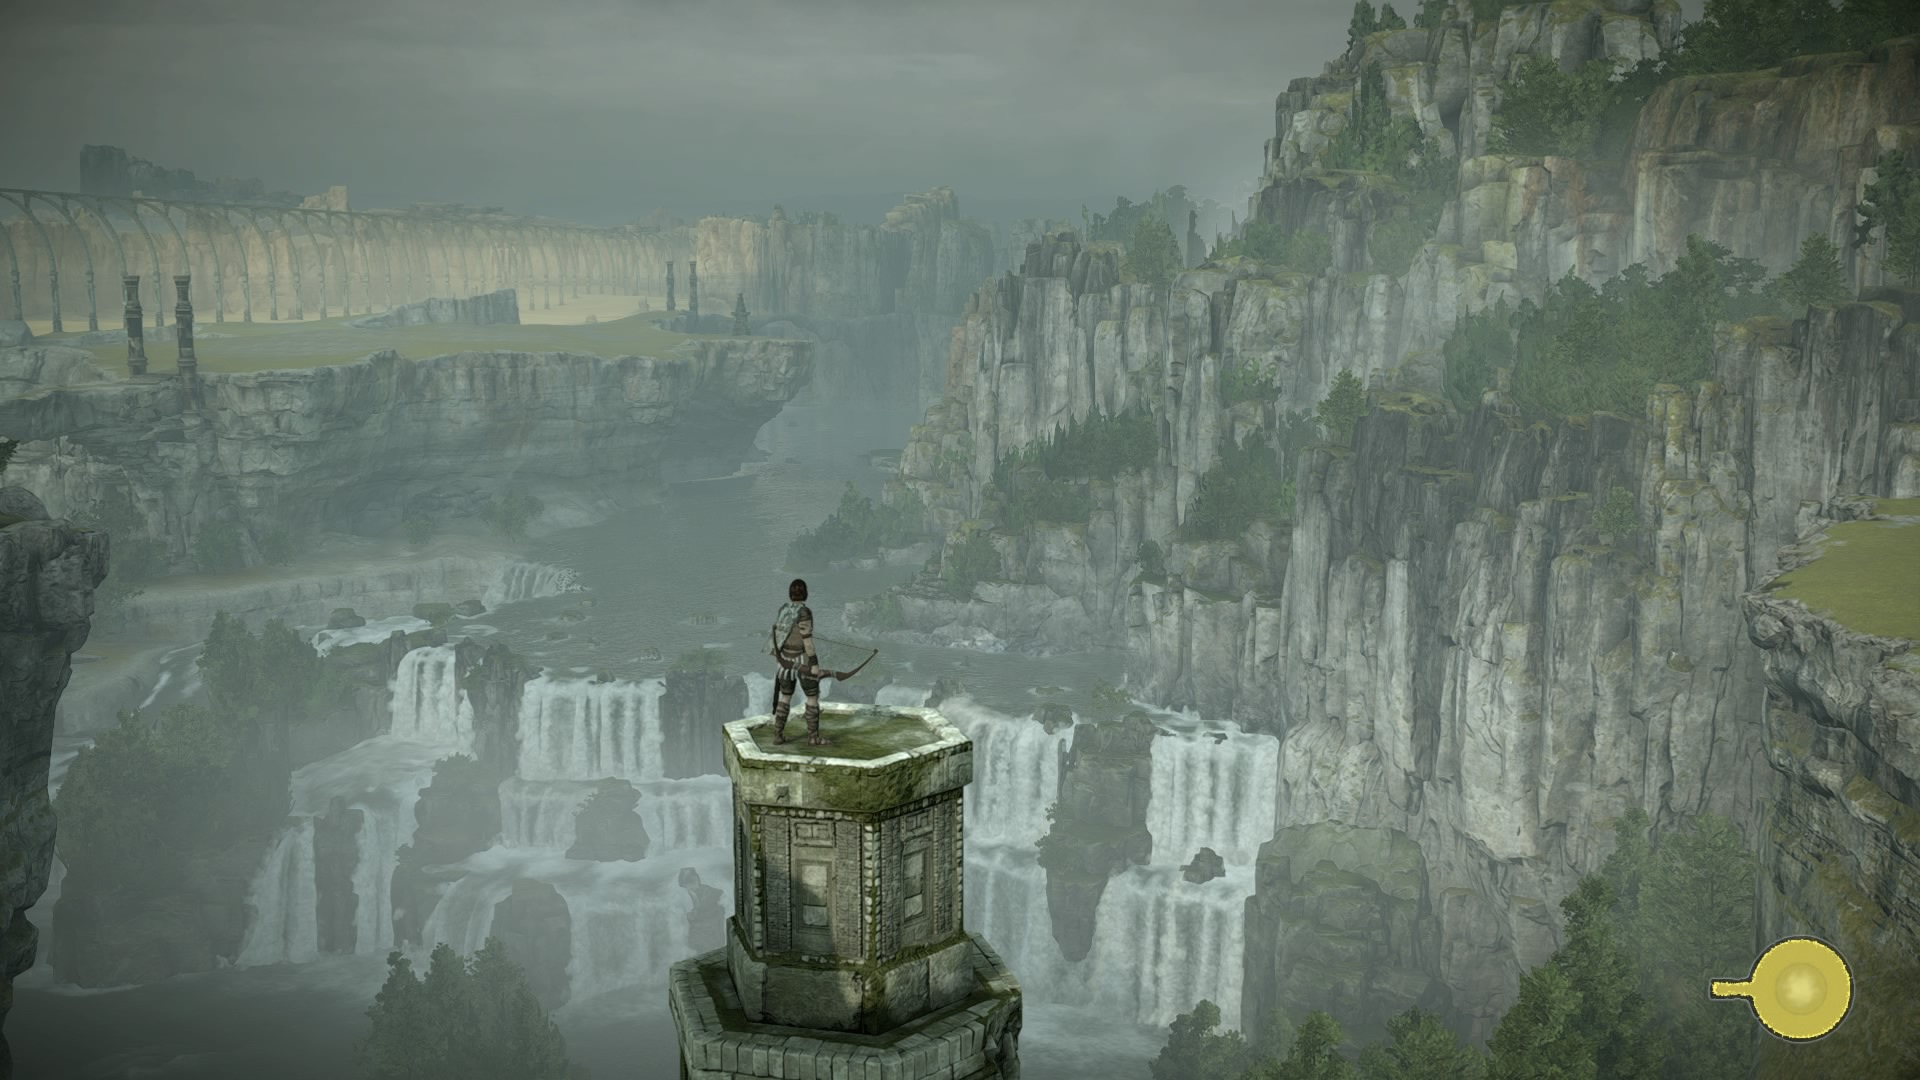 Shadow of the Colossus: Vale a Pena? 4